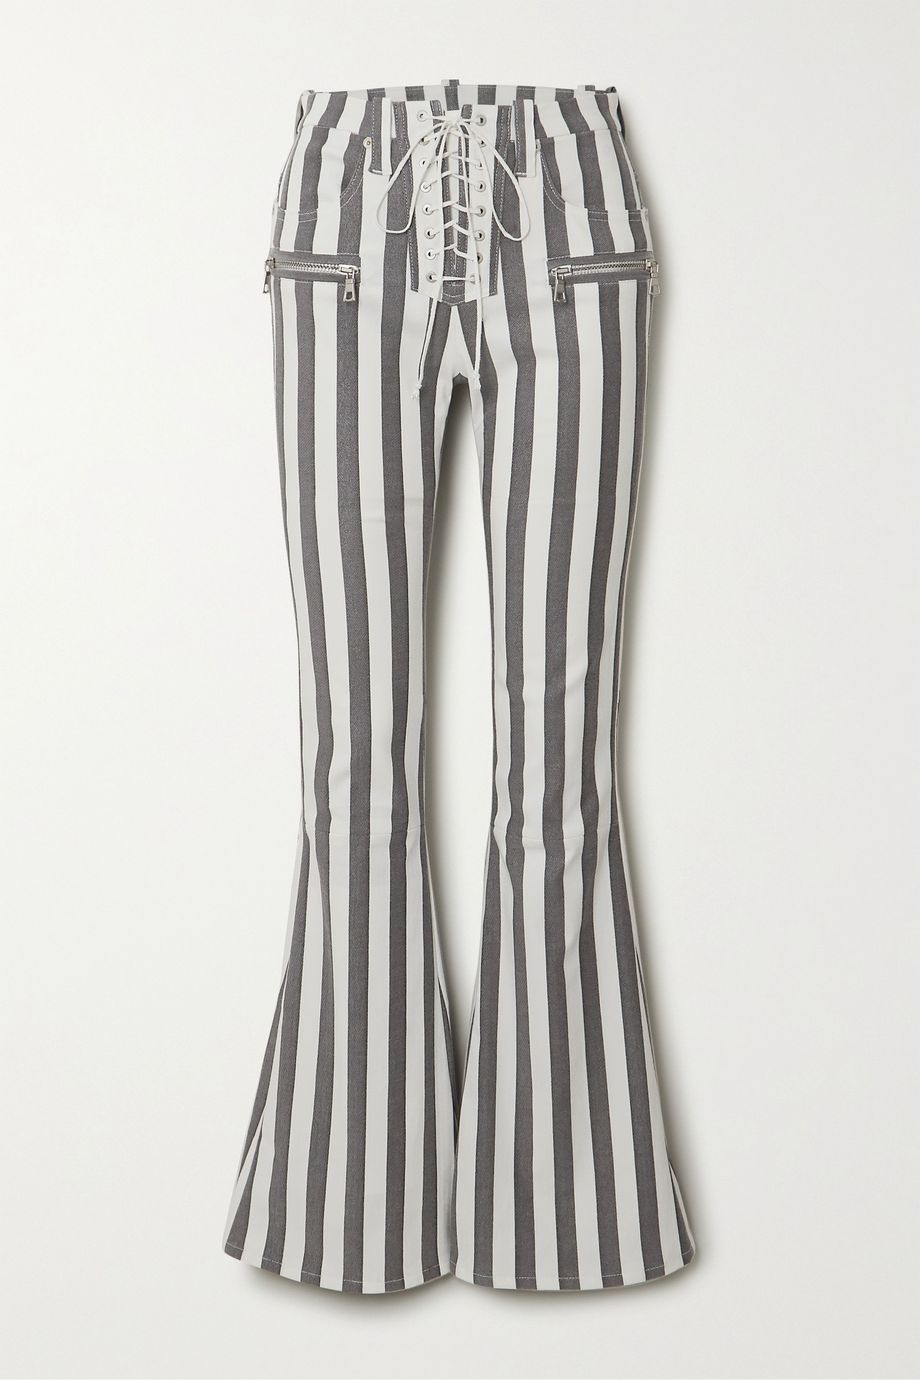 Unravel Project Lace-up striped cotton-blend flared pants